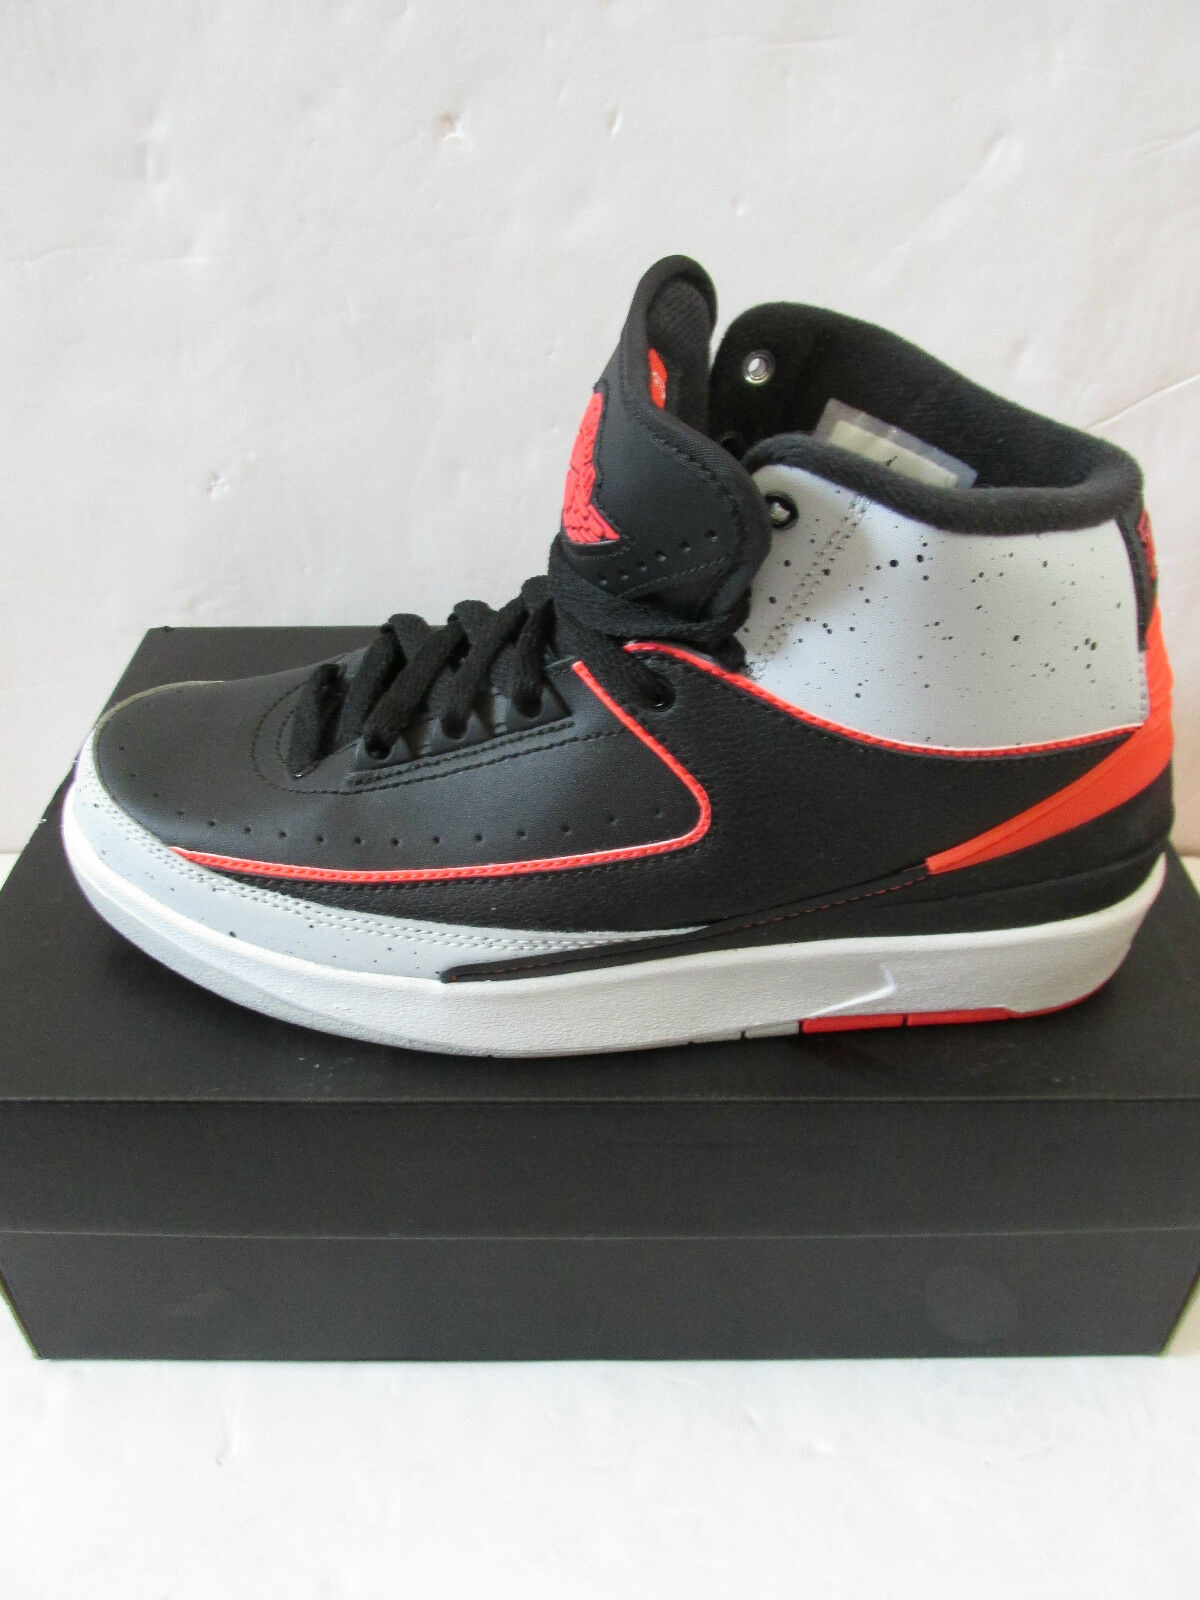 nike air jordan 2 retro BG hi top trainers 395718 023 sneakers shoes